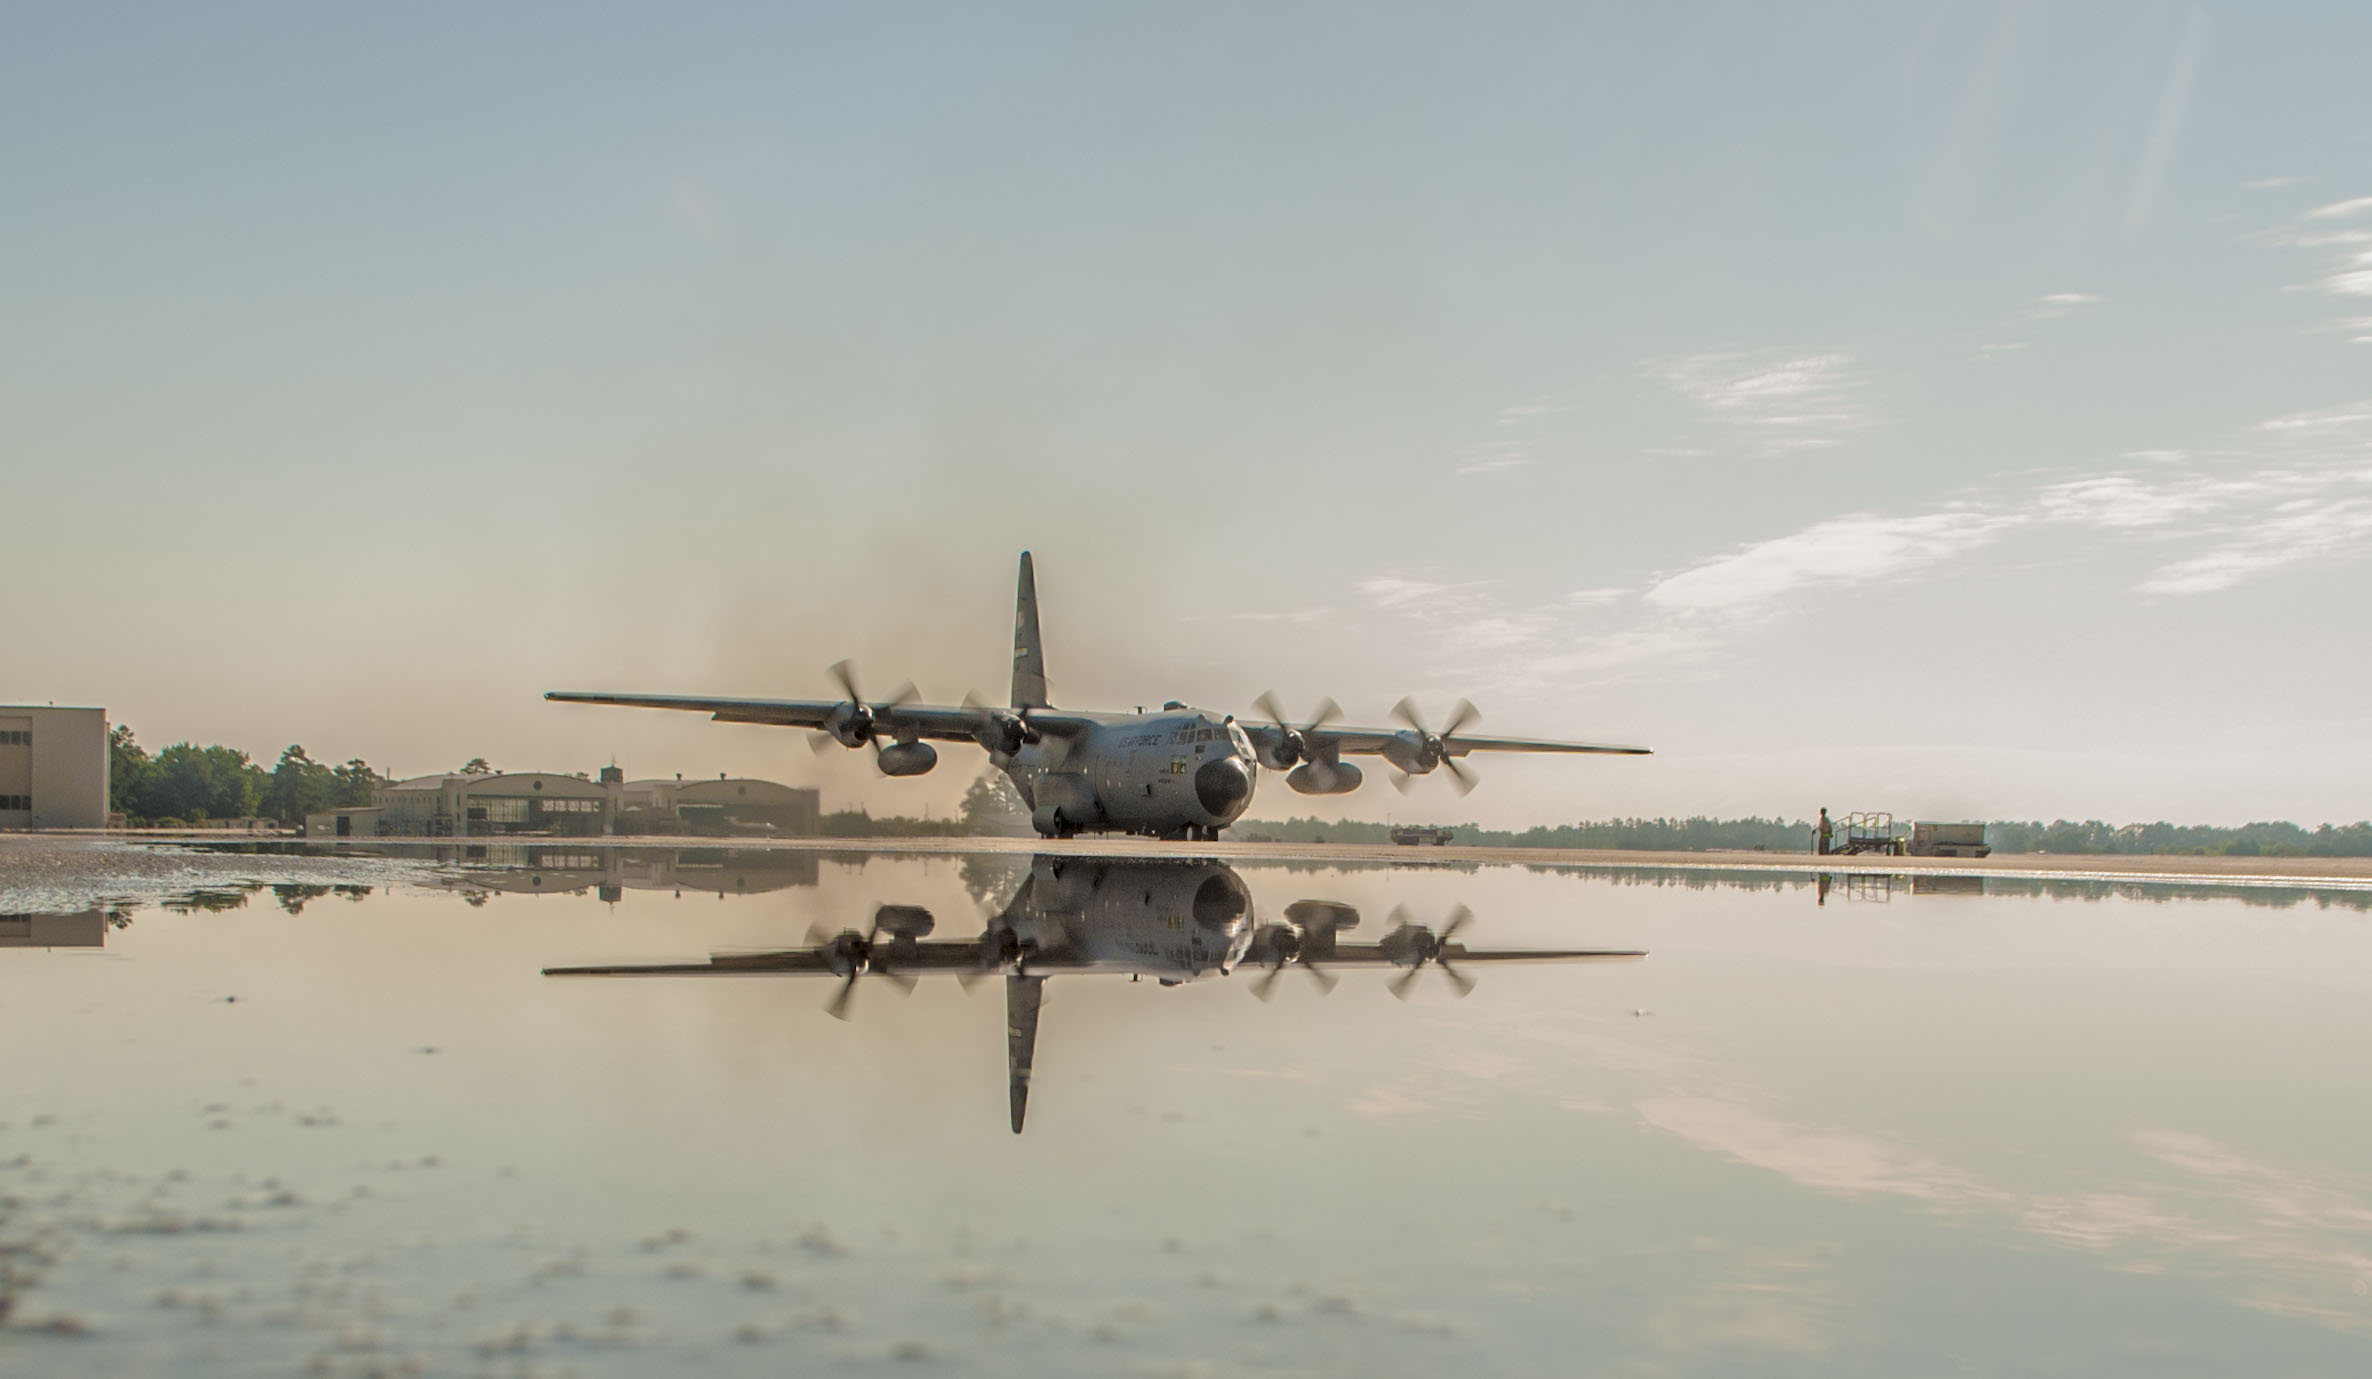 Final 440th C-130 Departs Pope > 22nd Air Force > Article